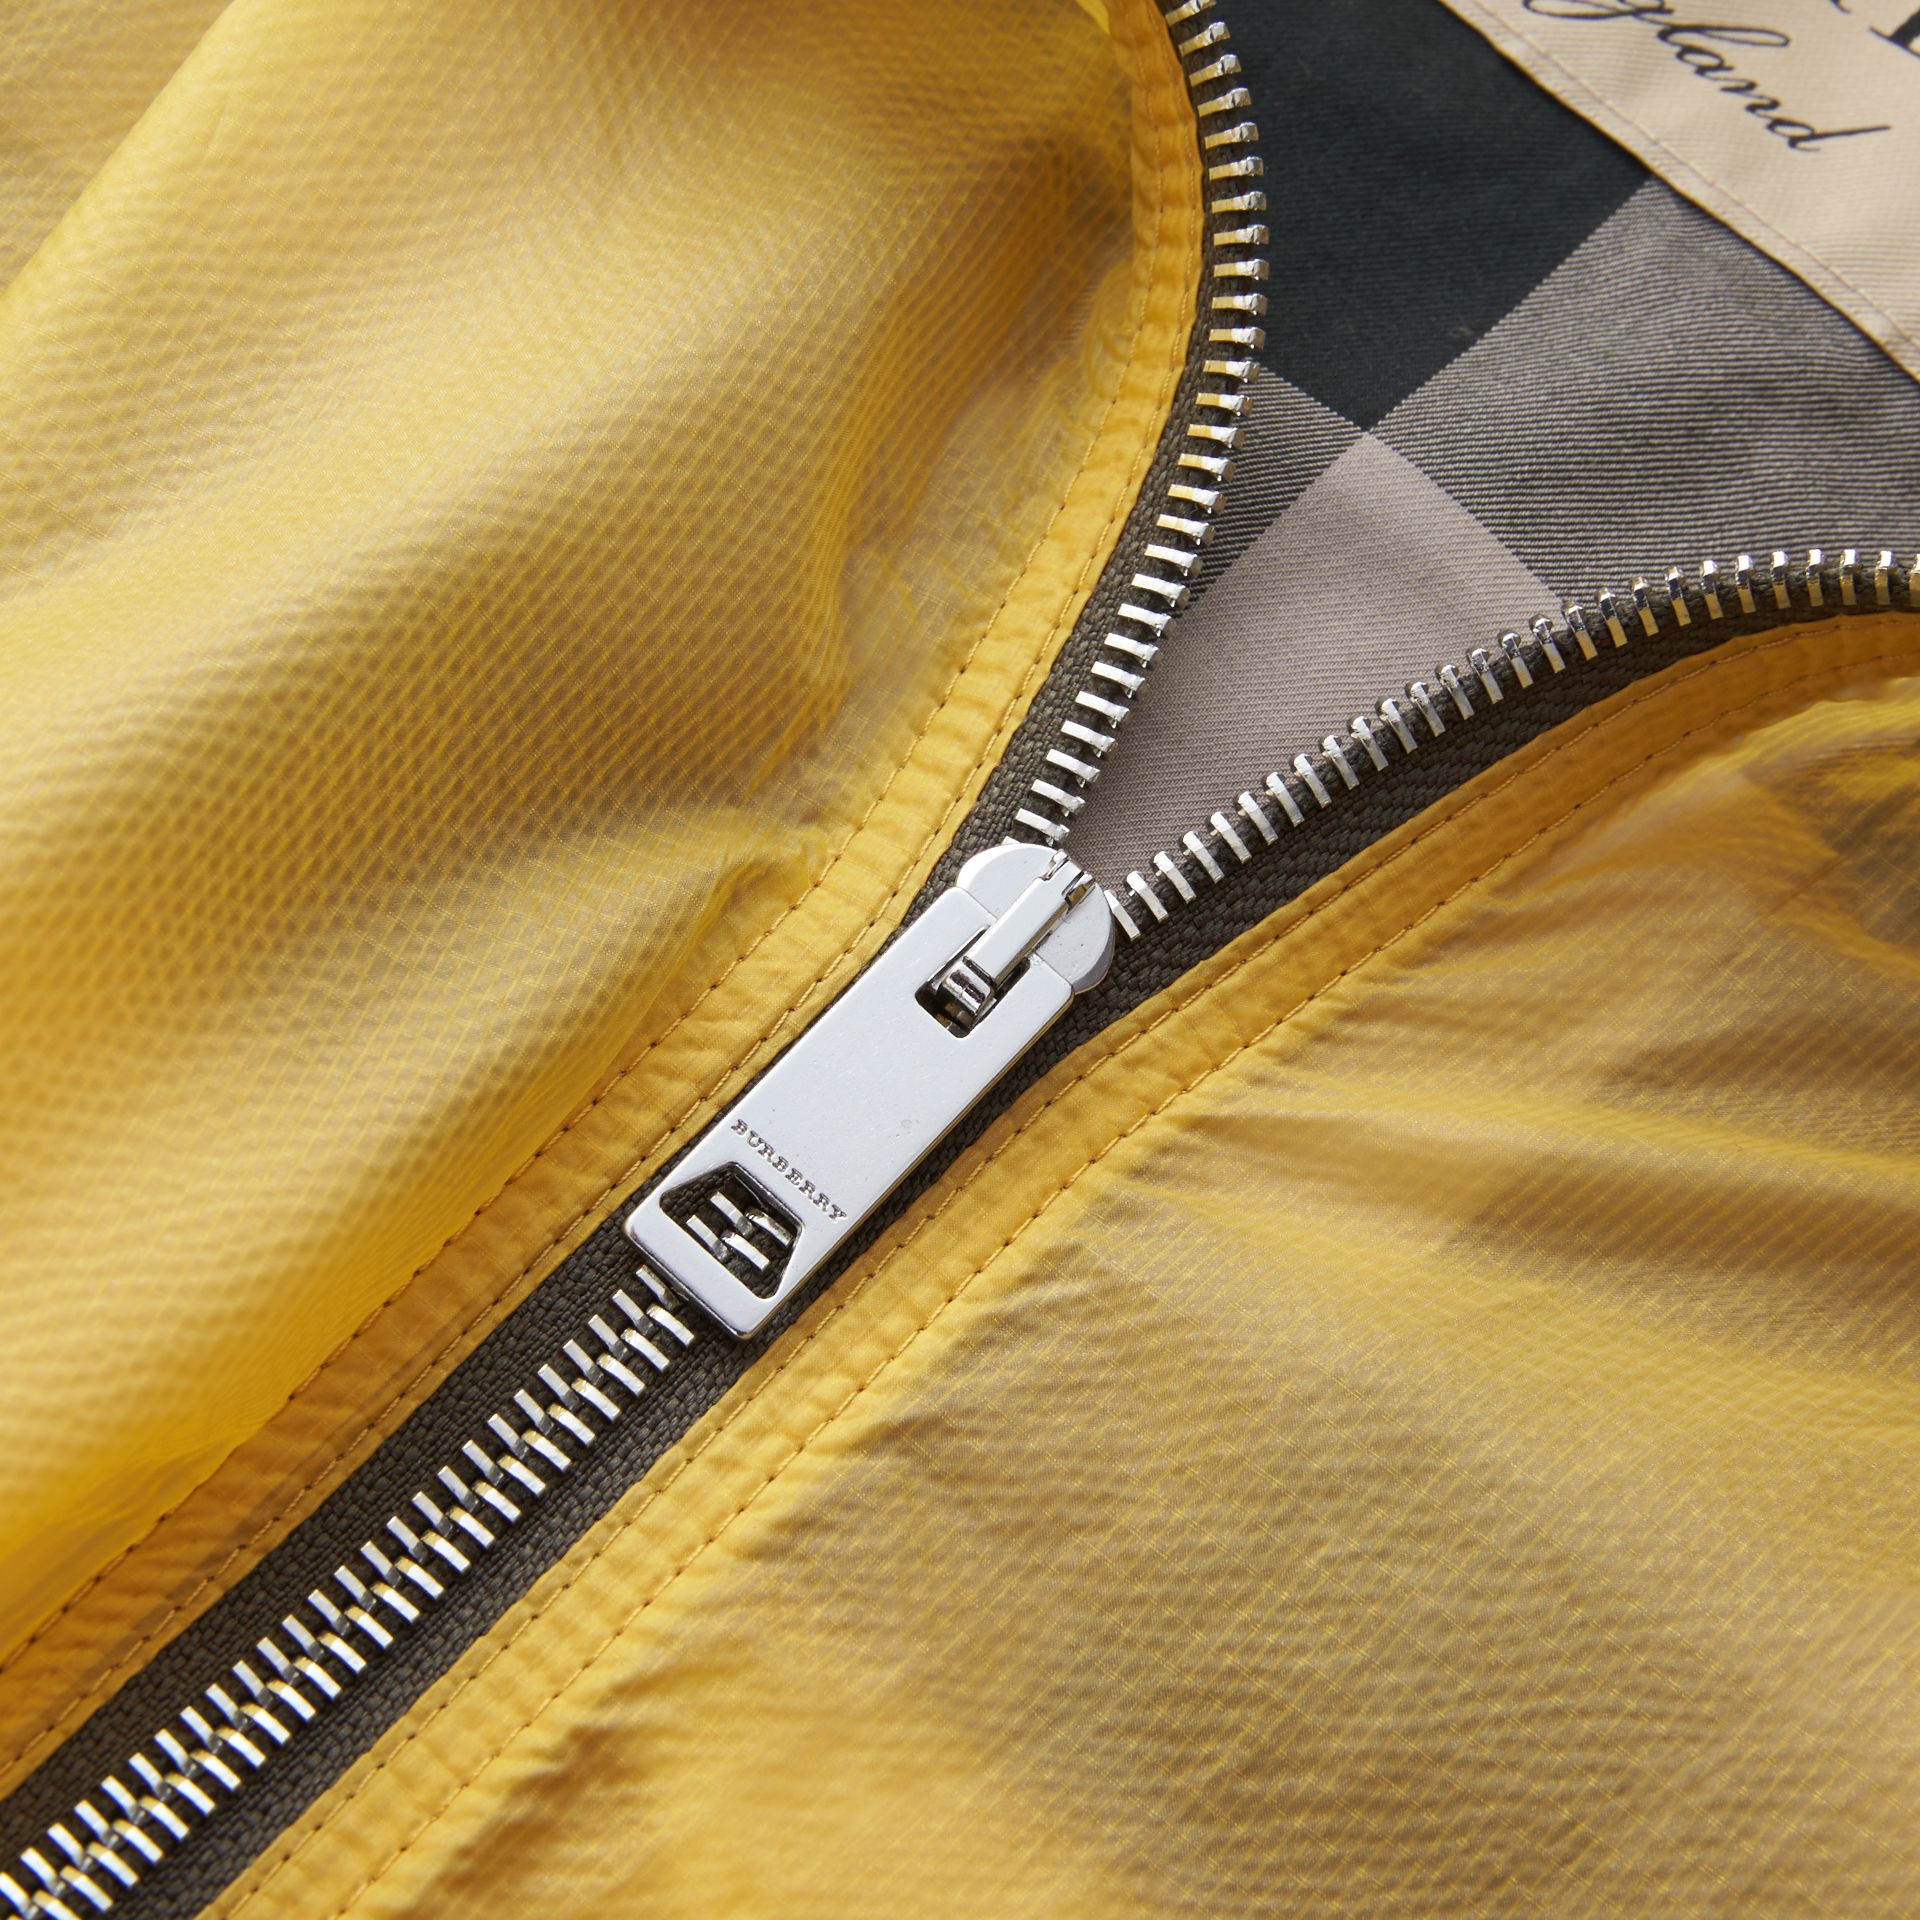 Hooded Super-lightweight Jacket in Pale Yellow - Men | Burberry Australia - gallery image 2